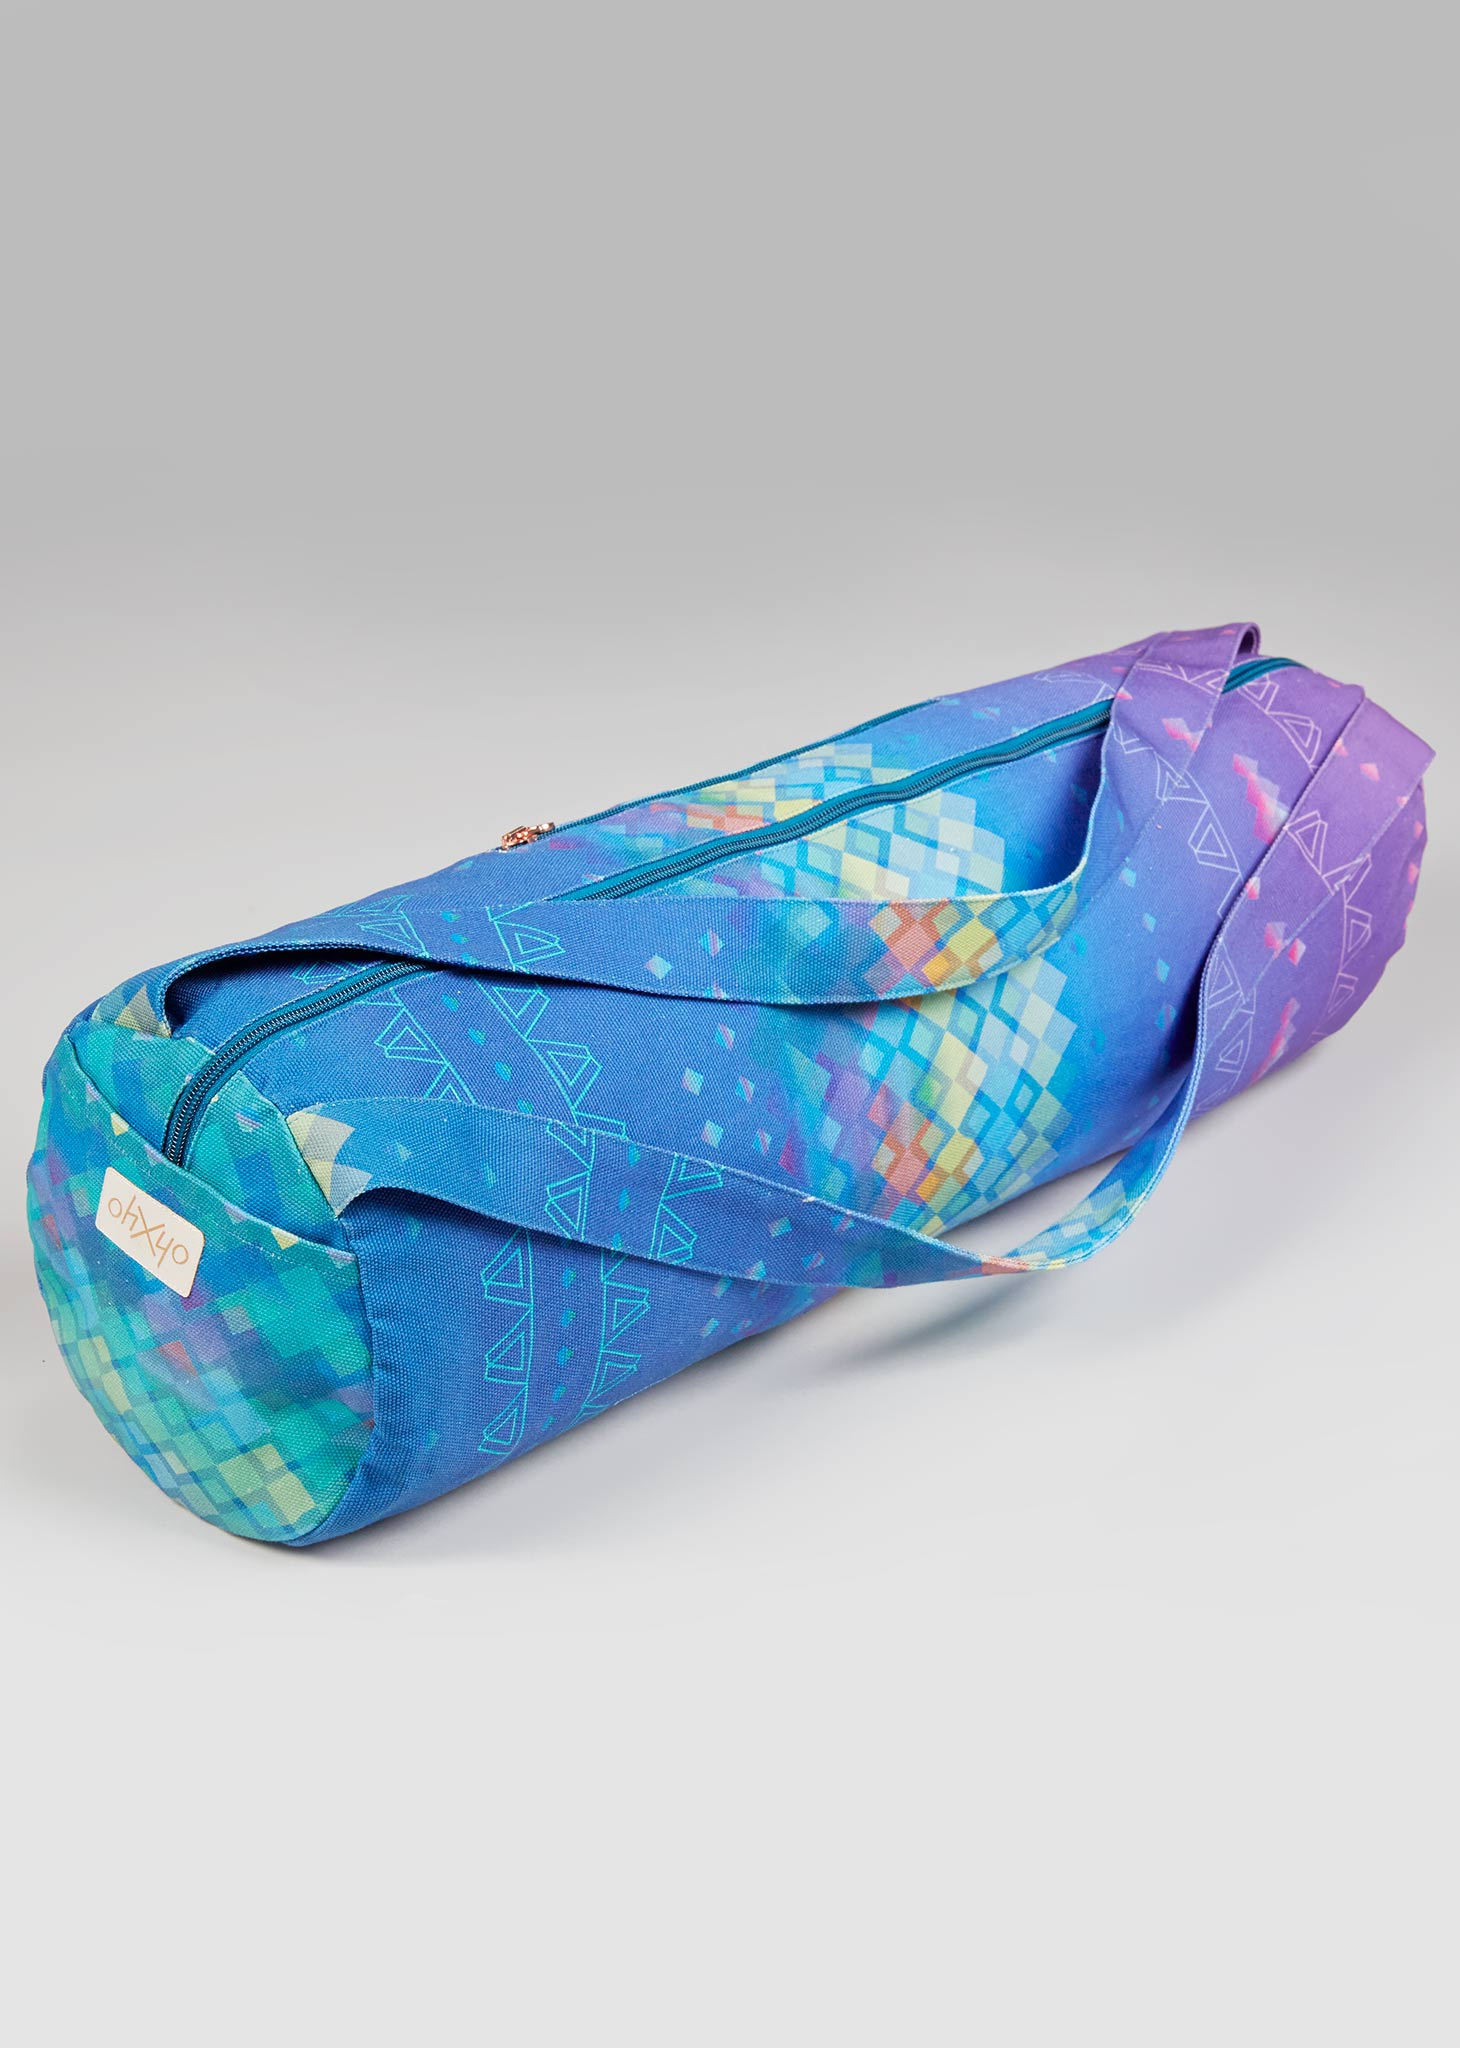 FLYING Yoga Mat Bag